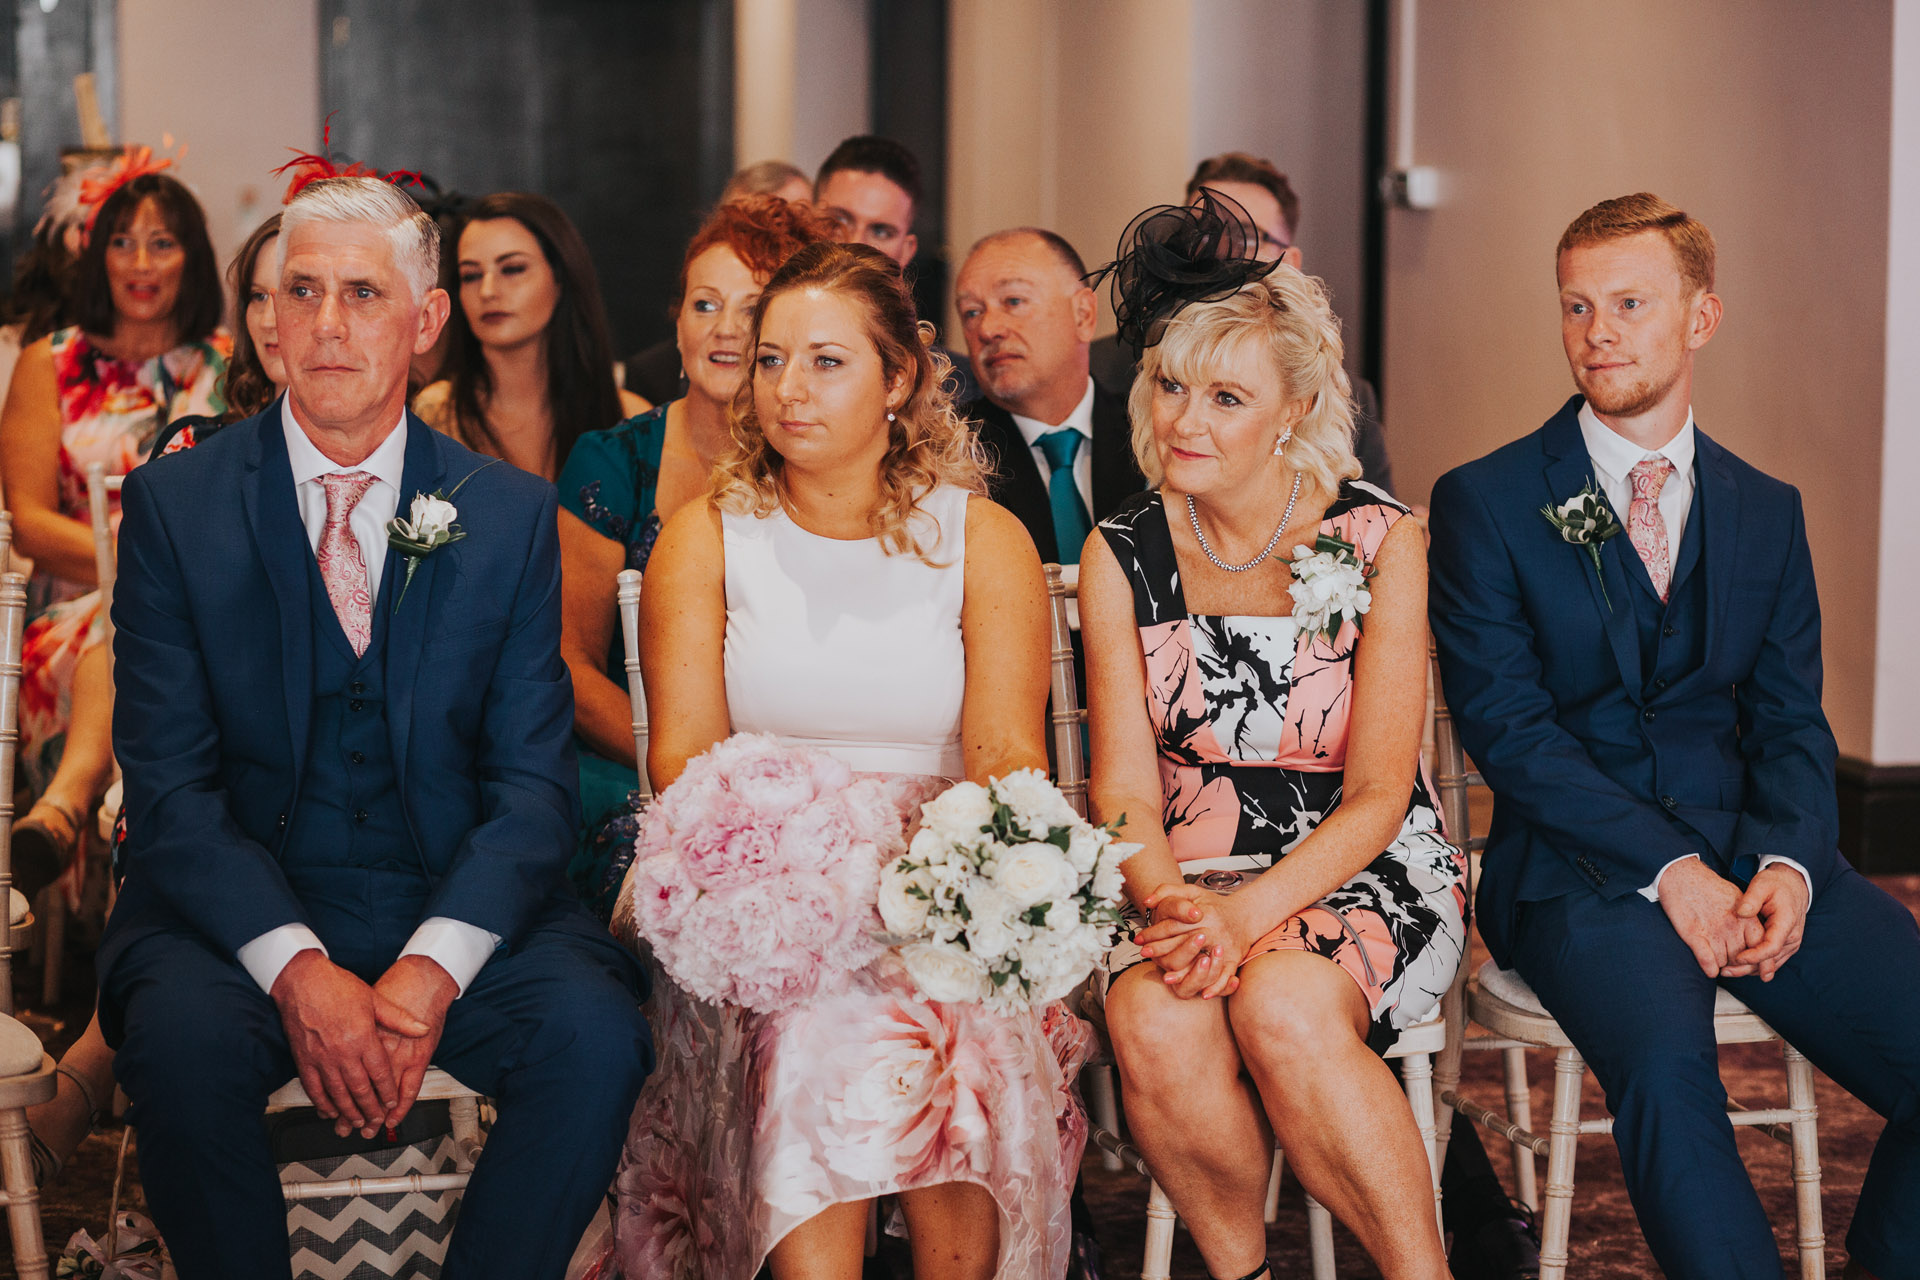 Brides family look emotional as they watch ceremony.